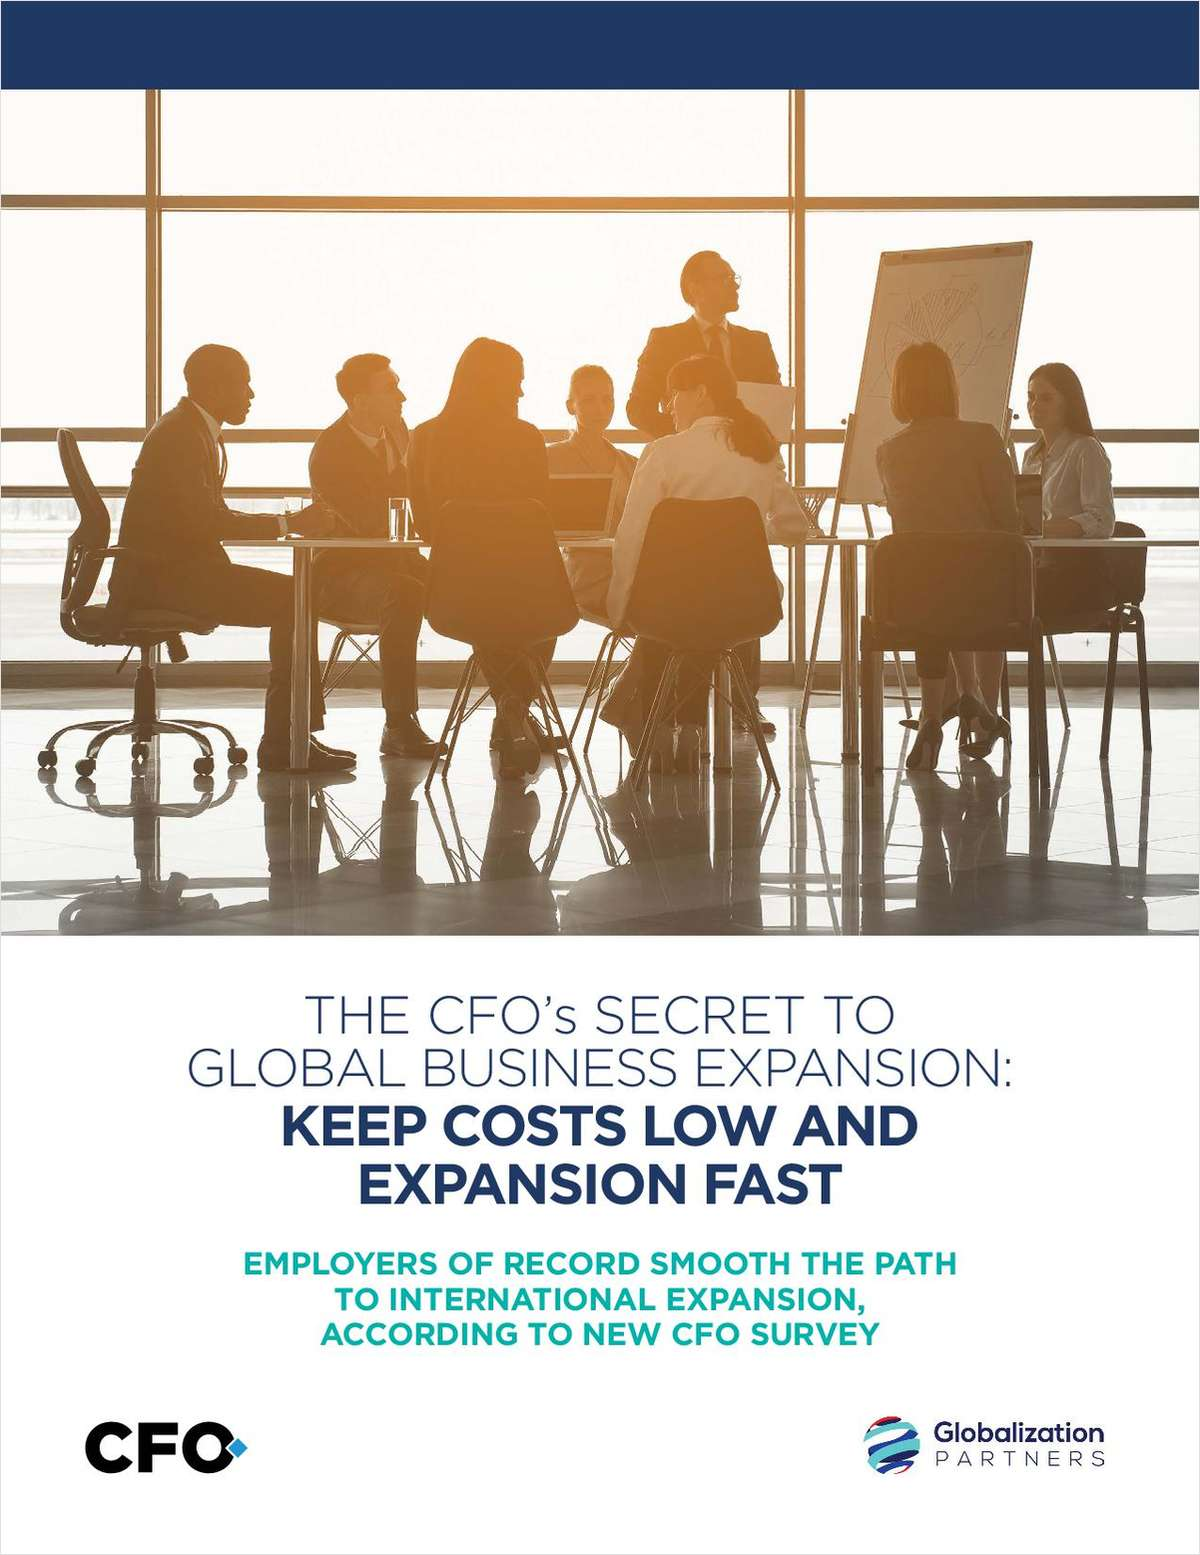 THE CFO's SECRET TO GLOBAL BUSINESS EXPANSION: KEEP COSTS LOW AND EXPANSION FAST